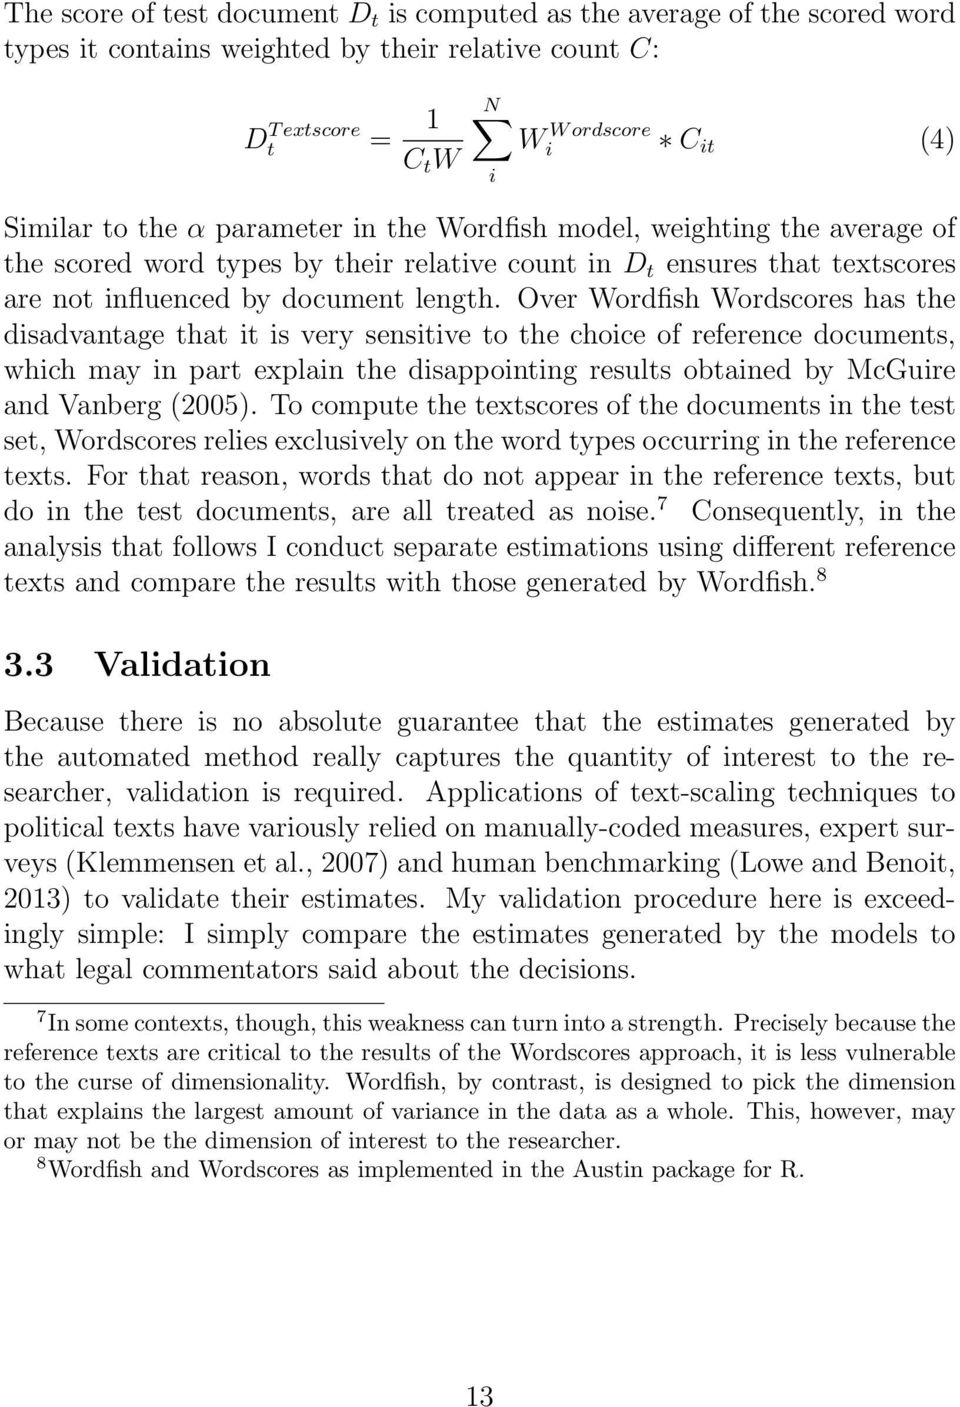 Over Wordfish Wordscores has the disadvantage that it is very sensitive to the choice of reference documents, which may in part explain the disappointing results obtained by McGuire and Vanberg